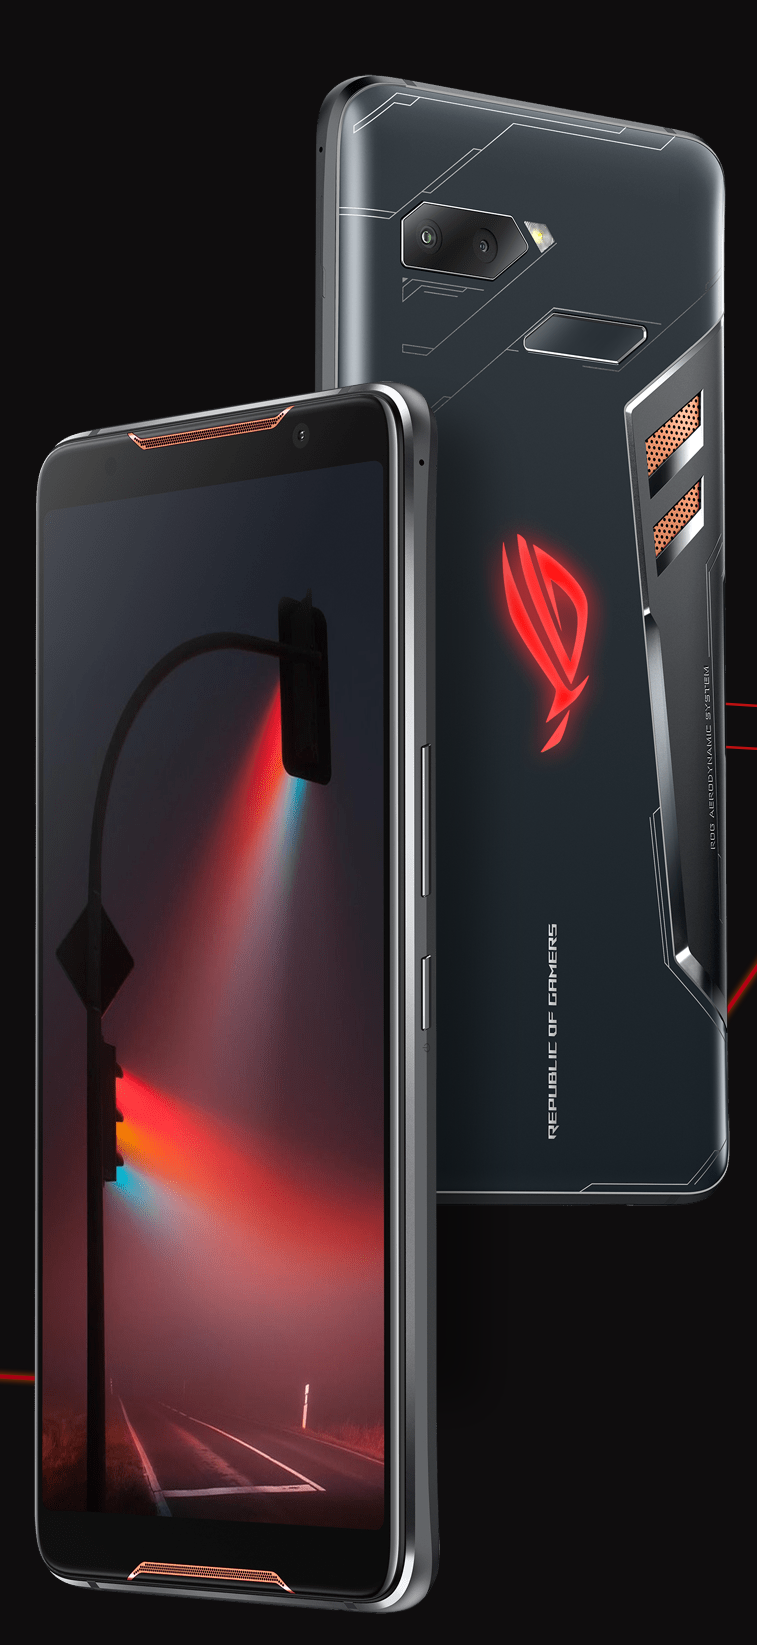 Asus ROG phone: U.S. launch set for October 18